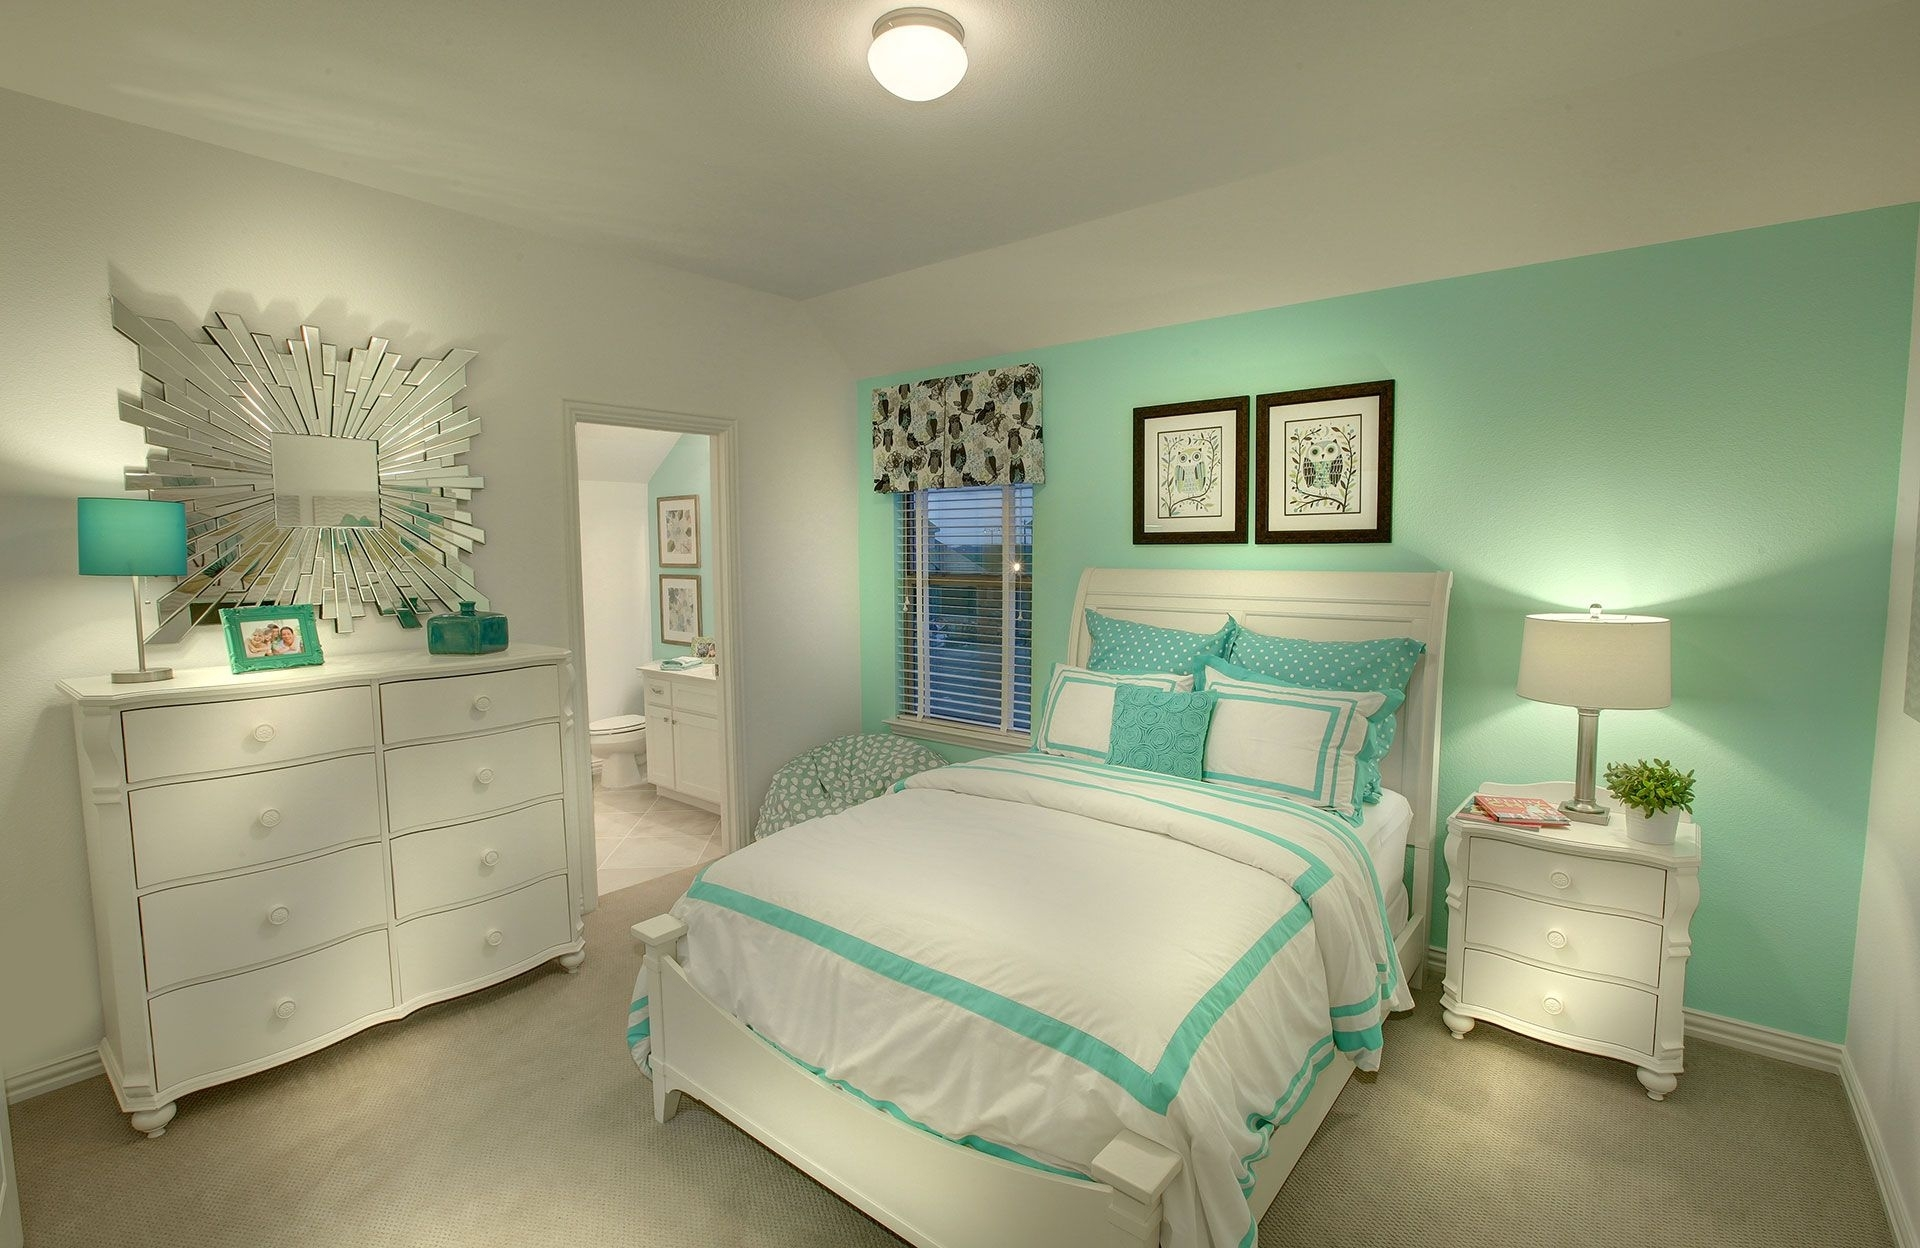 Bedroom Mint Green Bedroom Luxury Bedroom Design Grey And Seafoam In Latest Green Room Wall Accents (View 8 of 15)